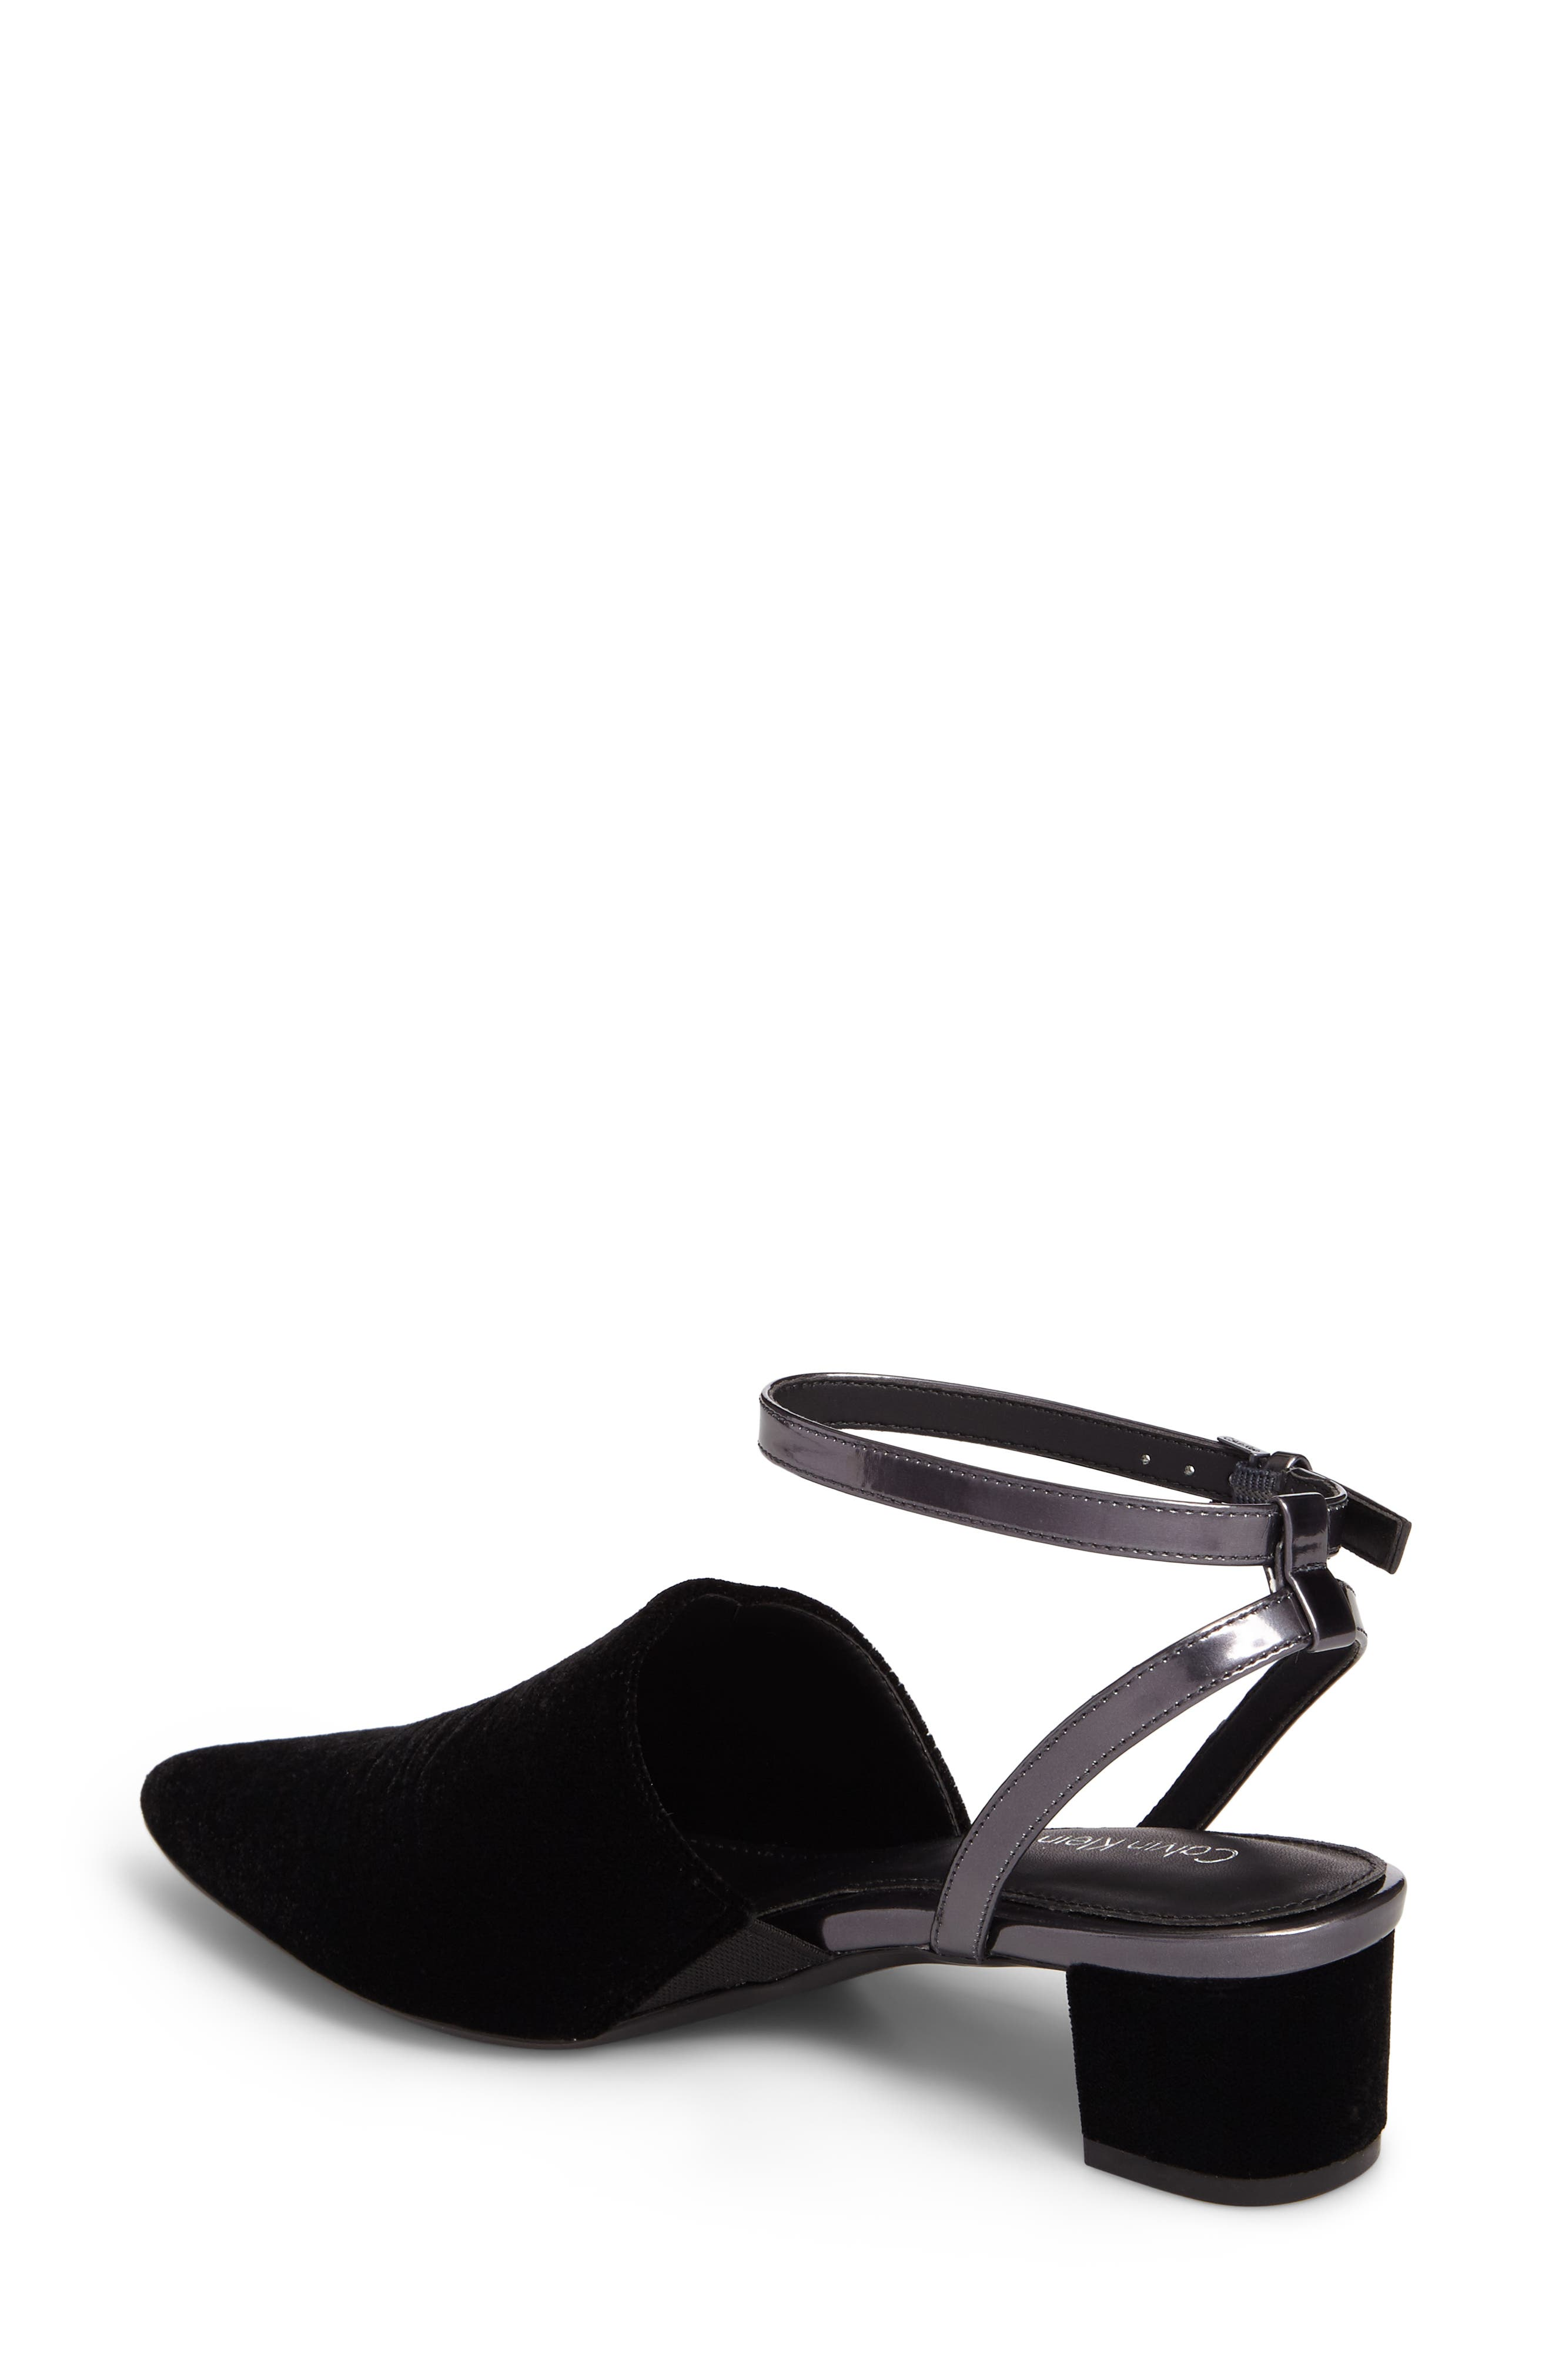 Ginetta Ankle Strap Pump,                             Alternate thumbnail 2, color,                             001